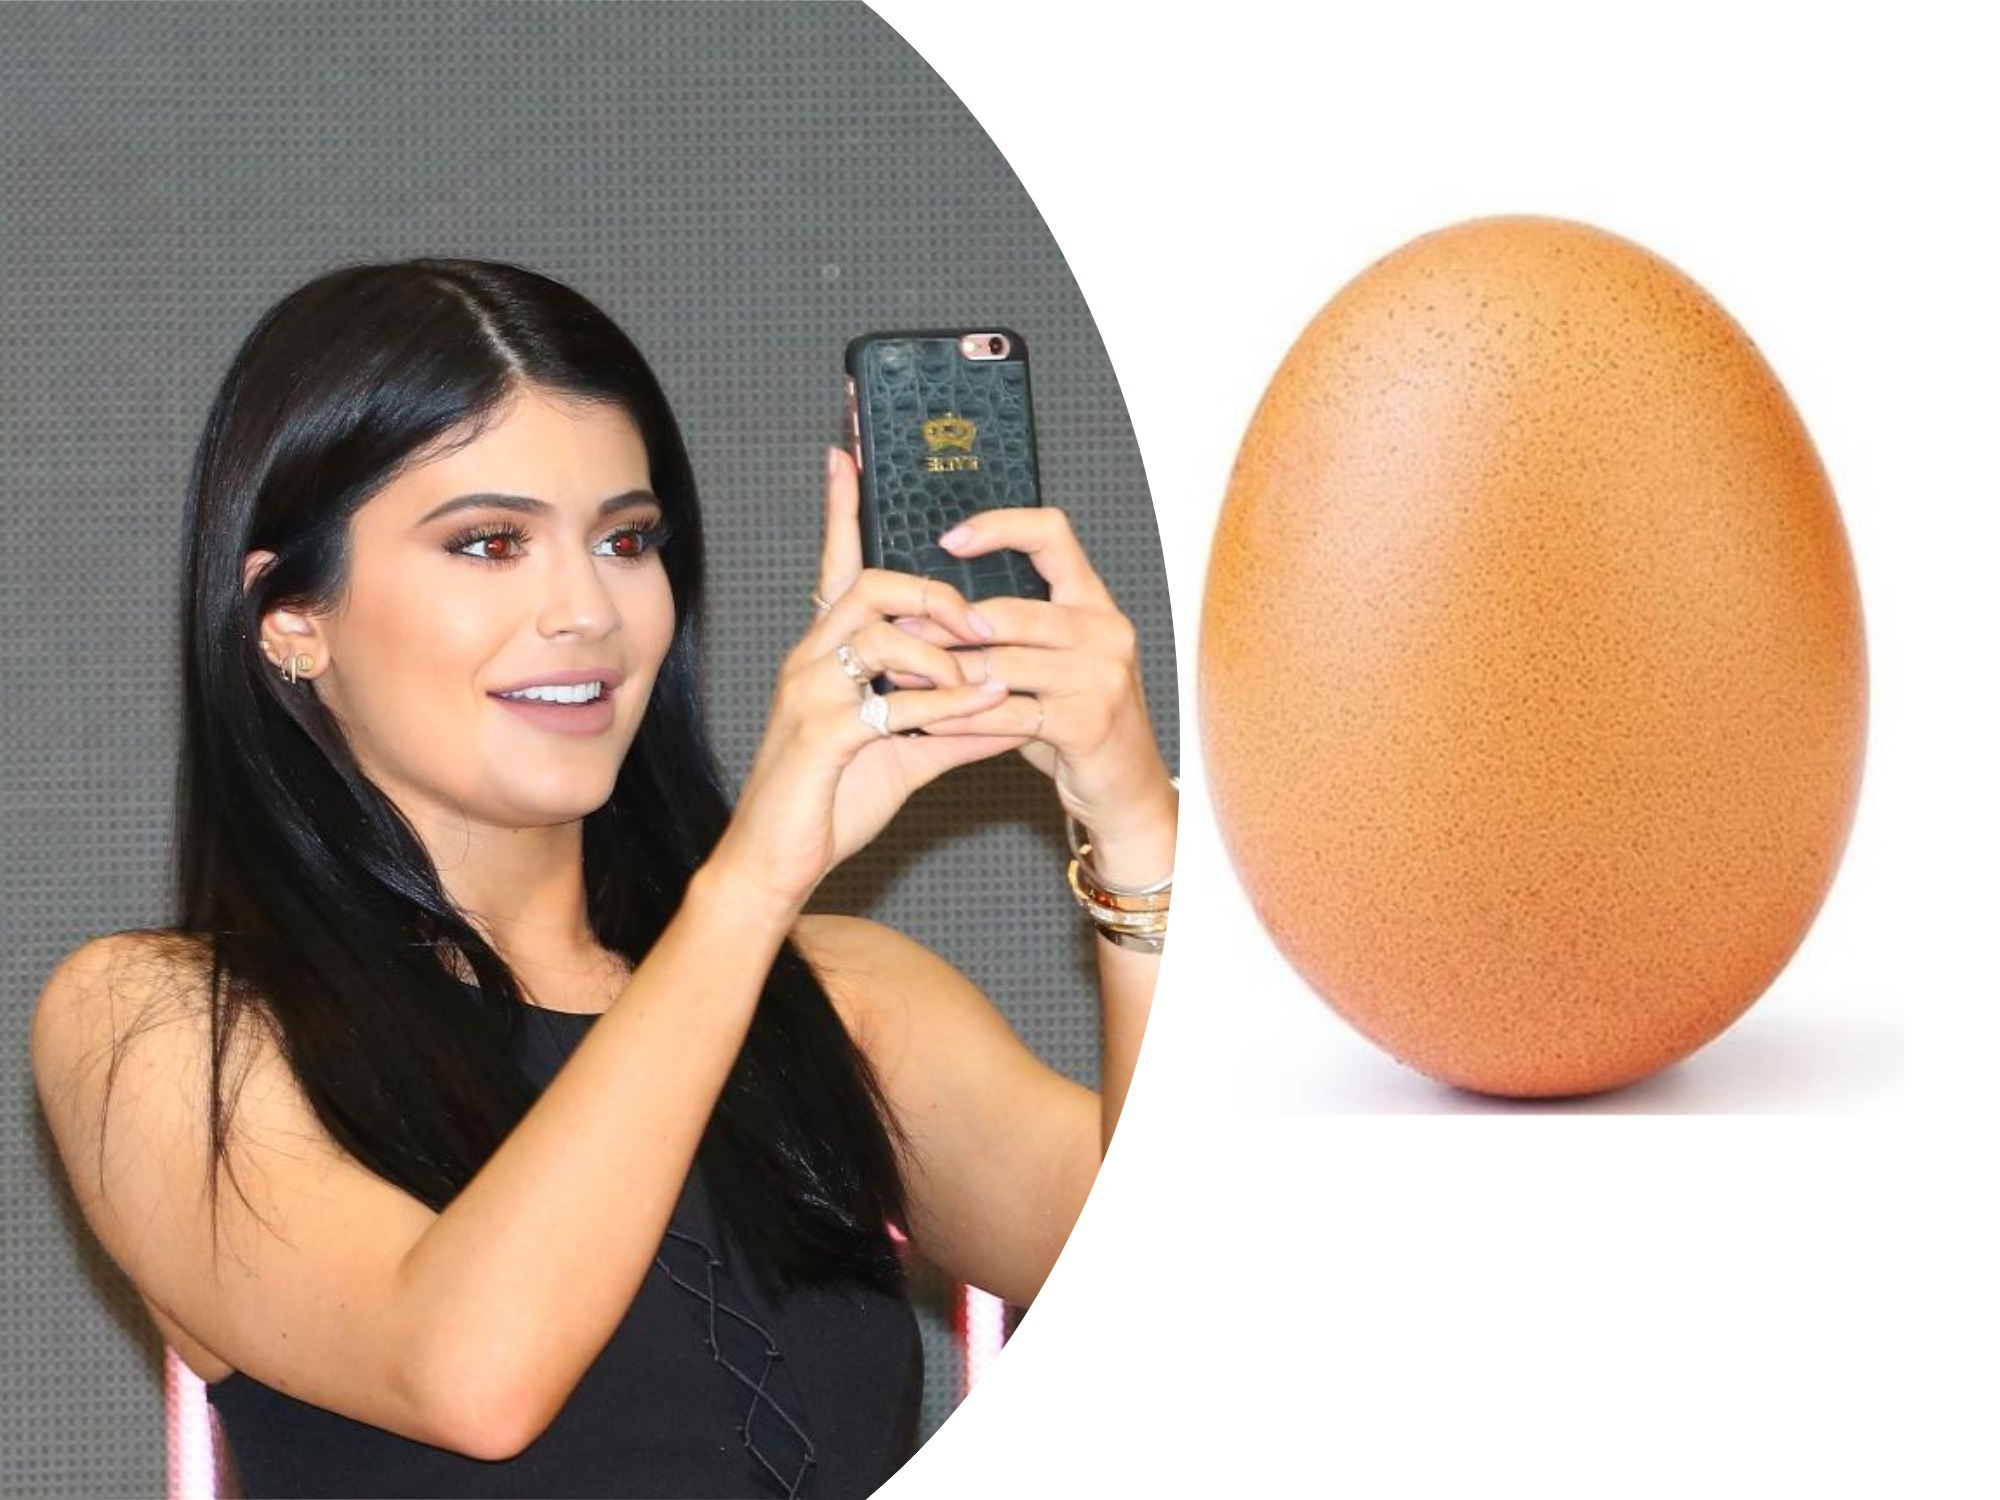 kylie-jenner-egg-post-insta-record-photo